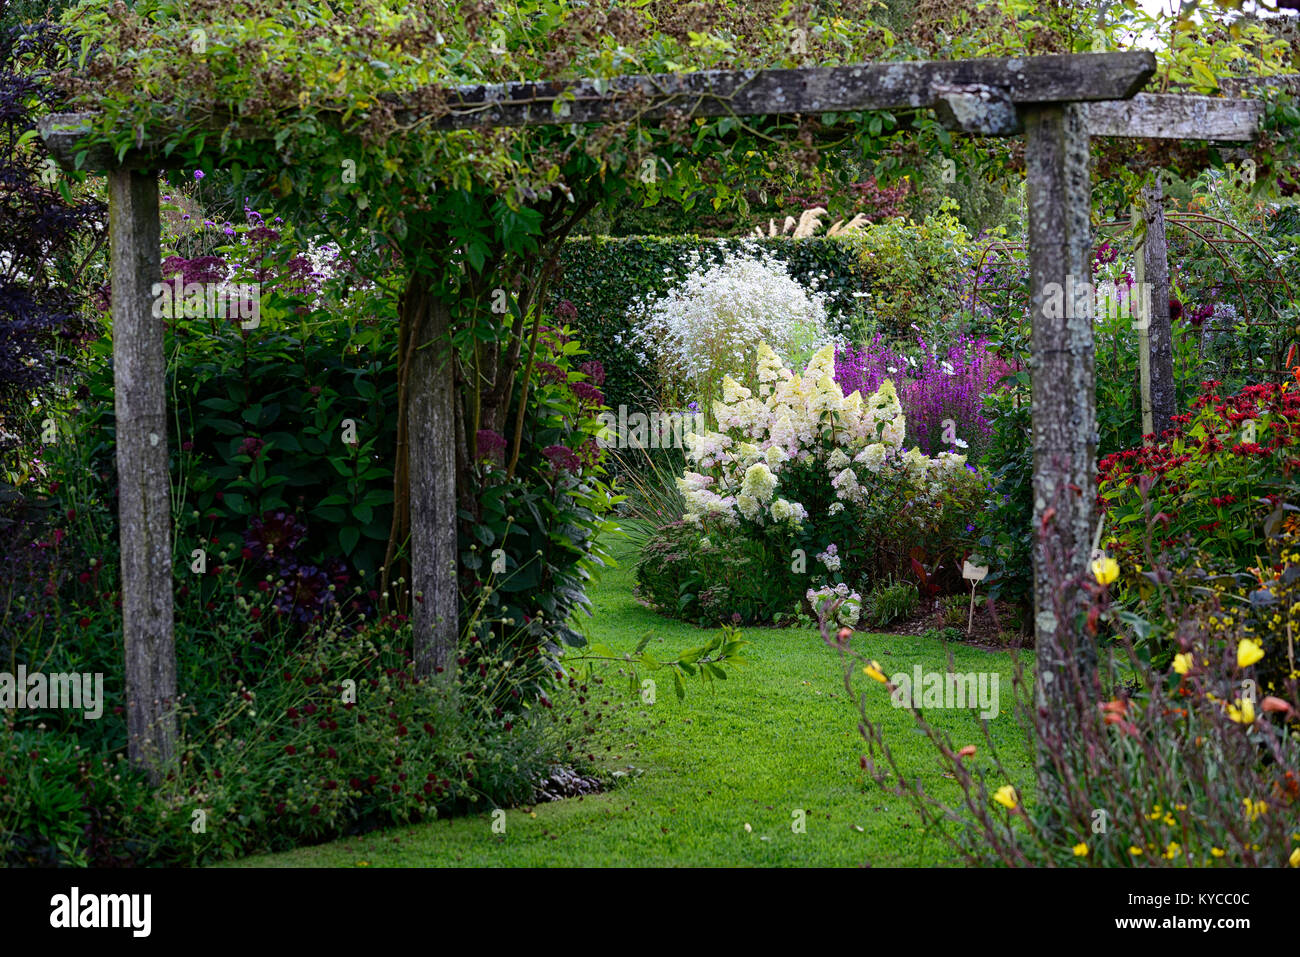 pergola garden stockfotos pergola garden bilder seite 2 alamy. Black Bedroom Furniture Sets. Home Design Ideas